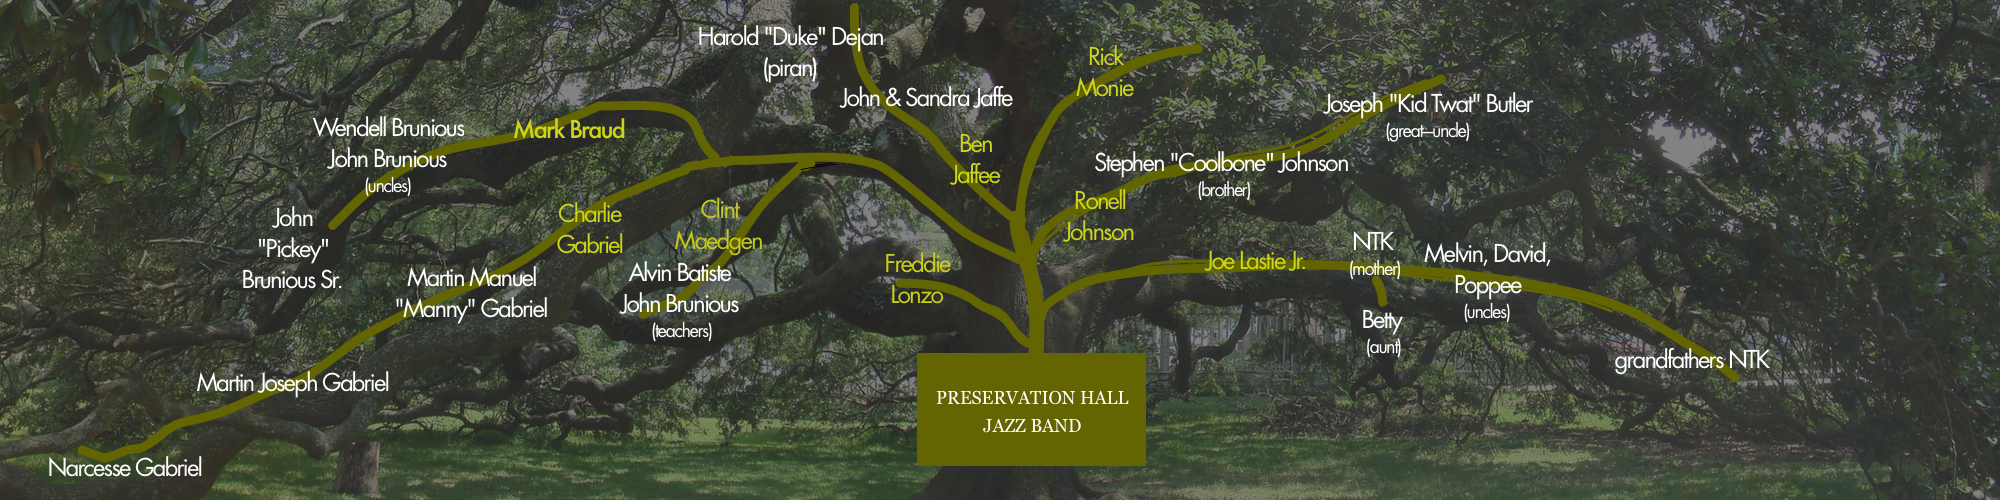 Preservation Hall Family Tree